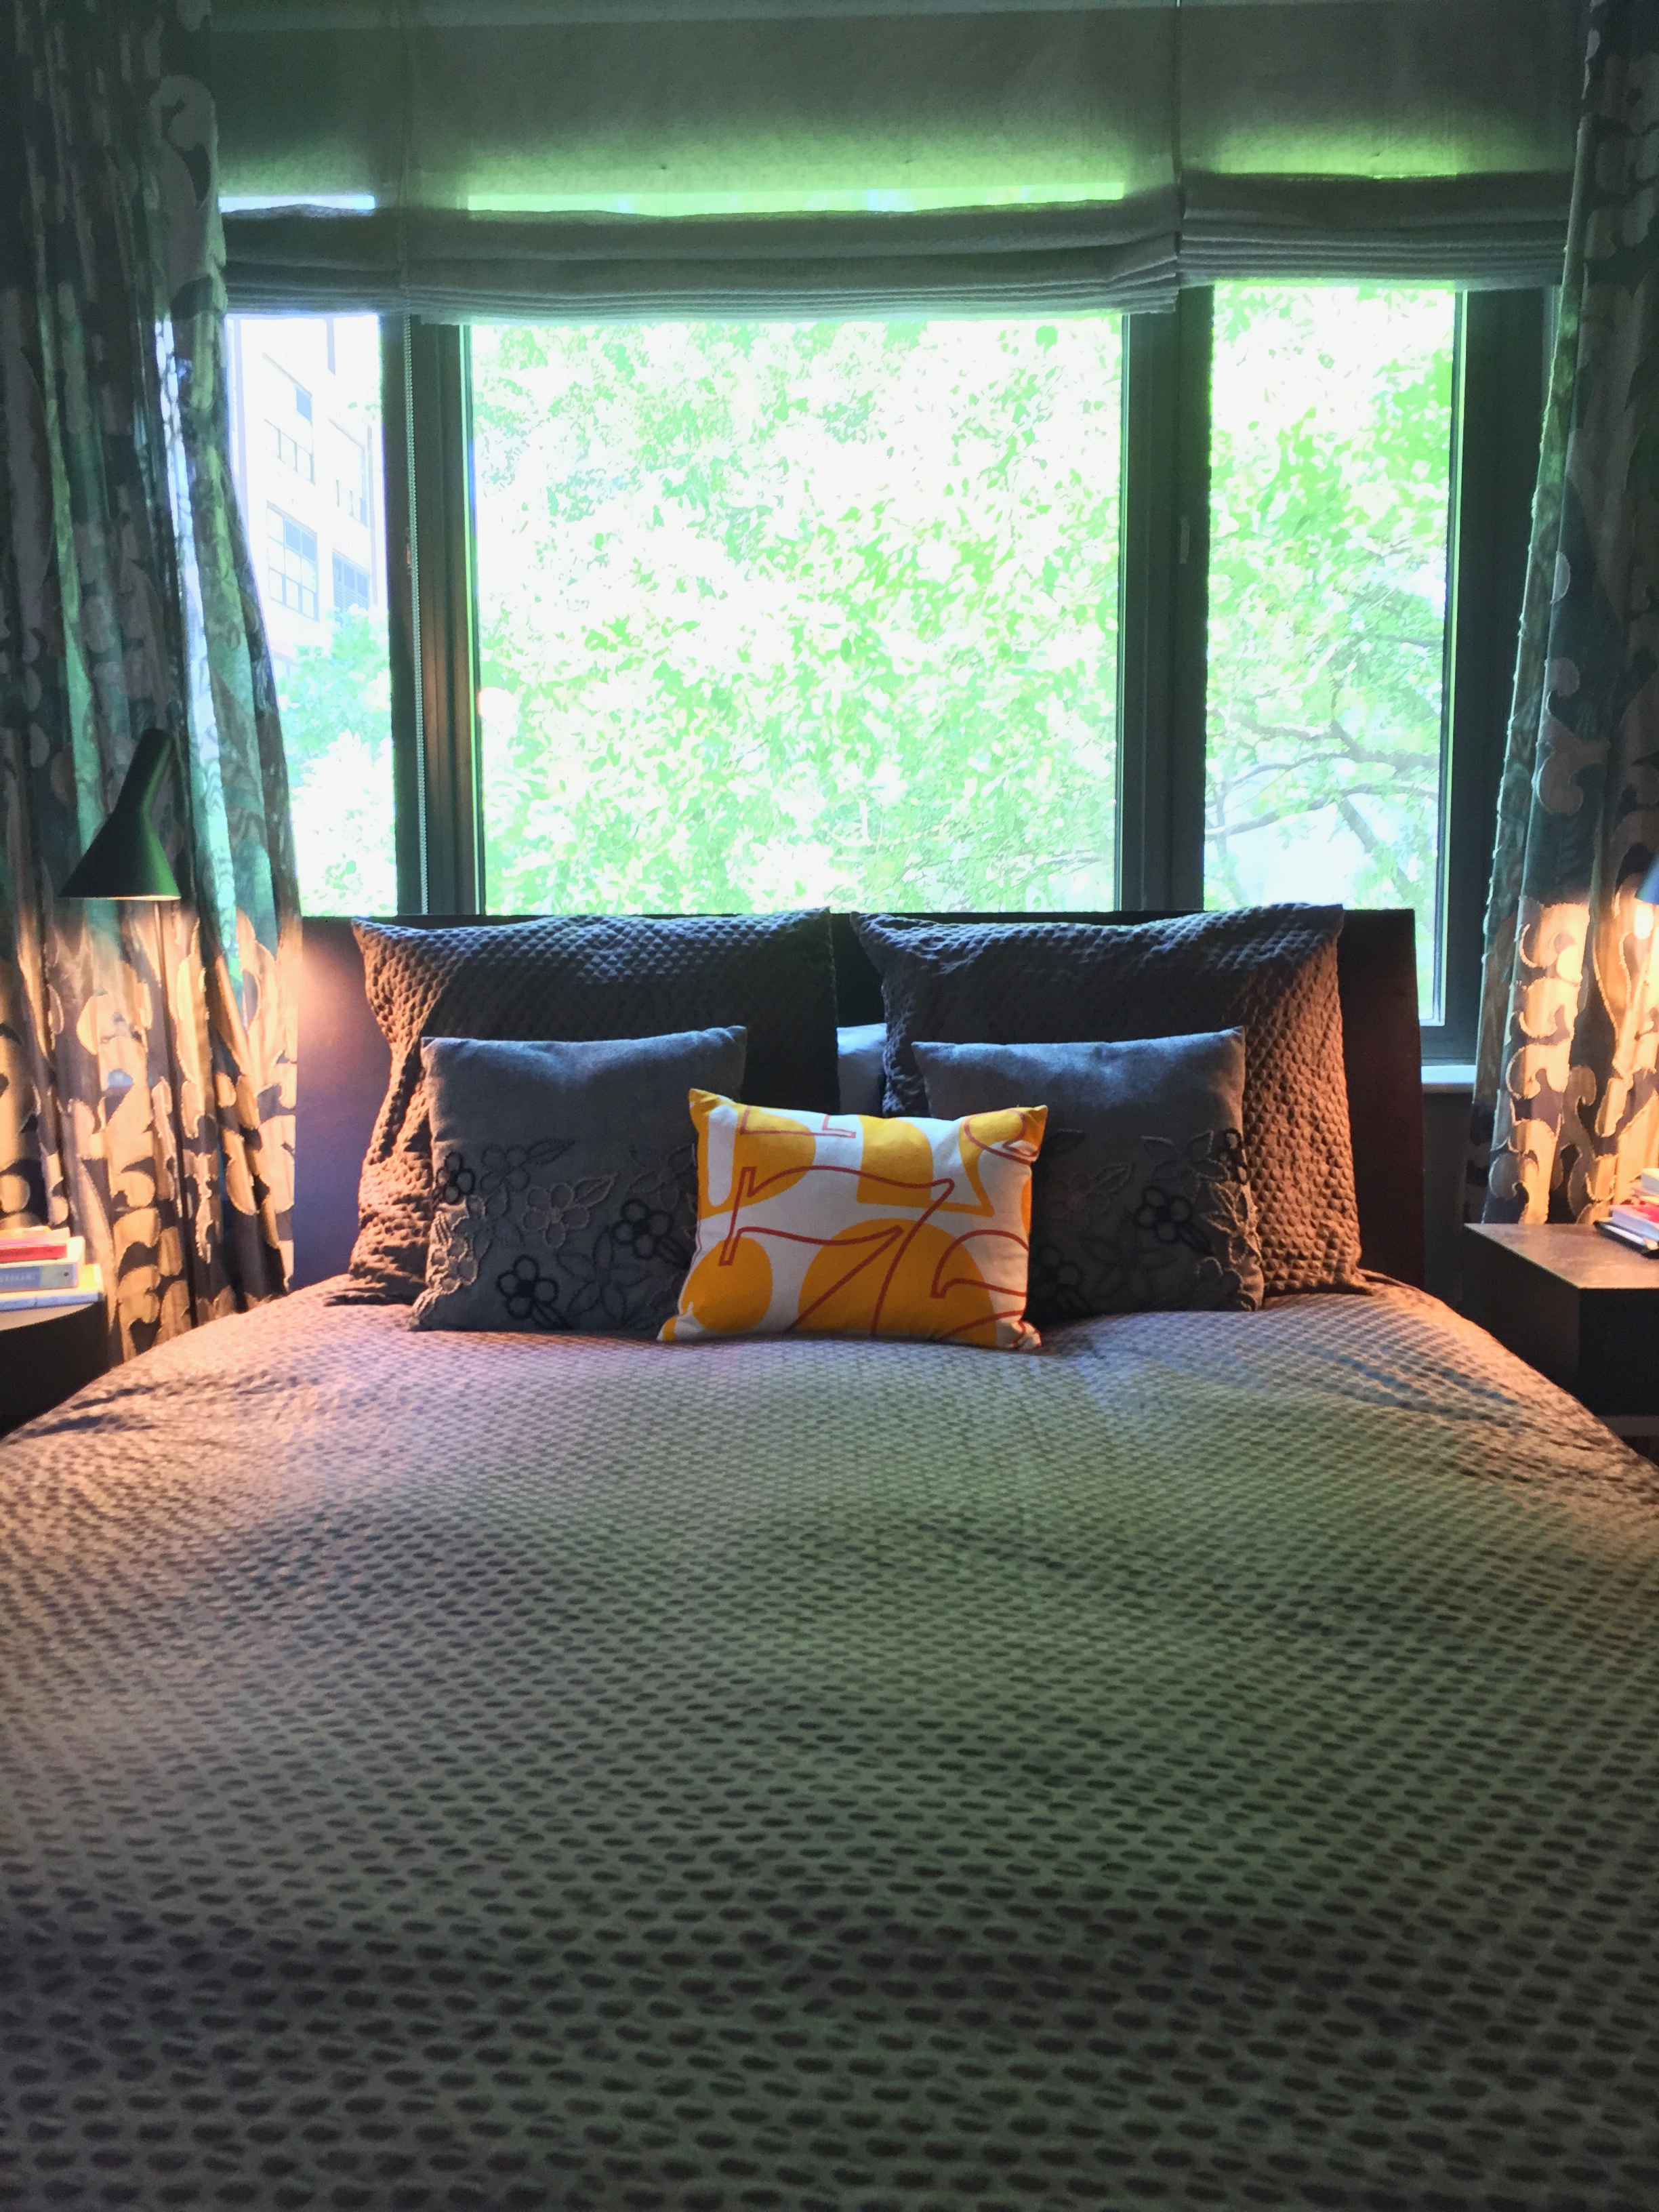 Light filters through the trees outside and keeps the bedroom bright yet cozy